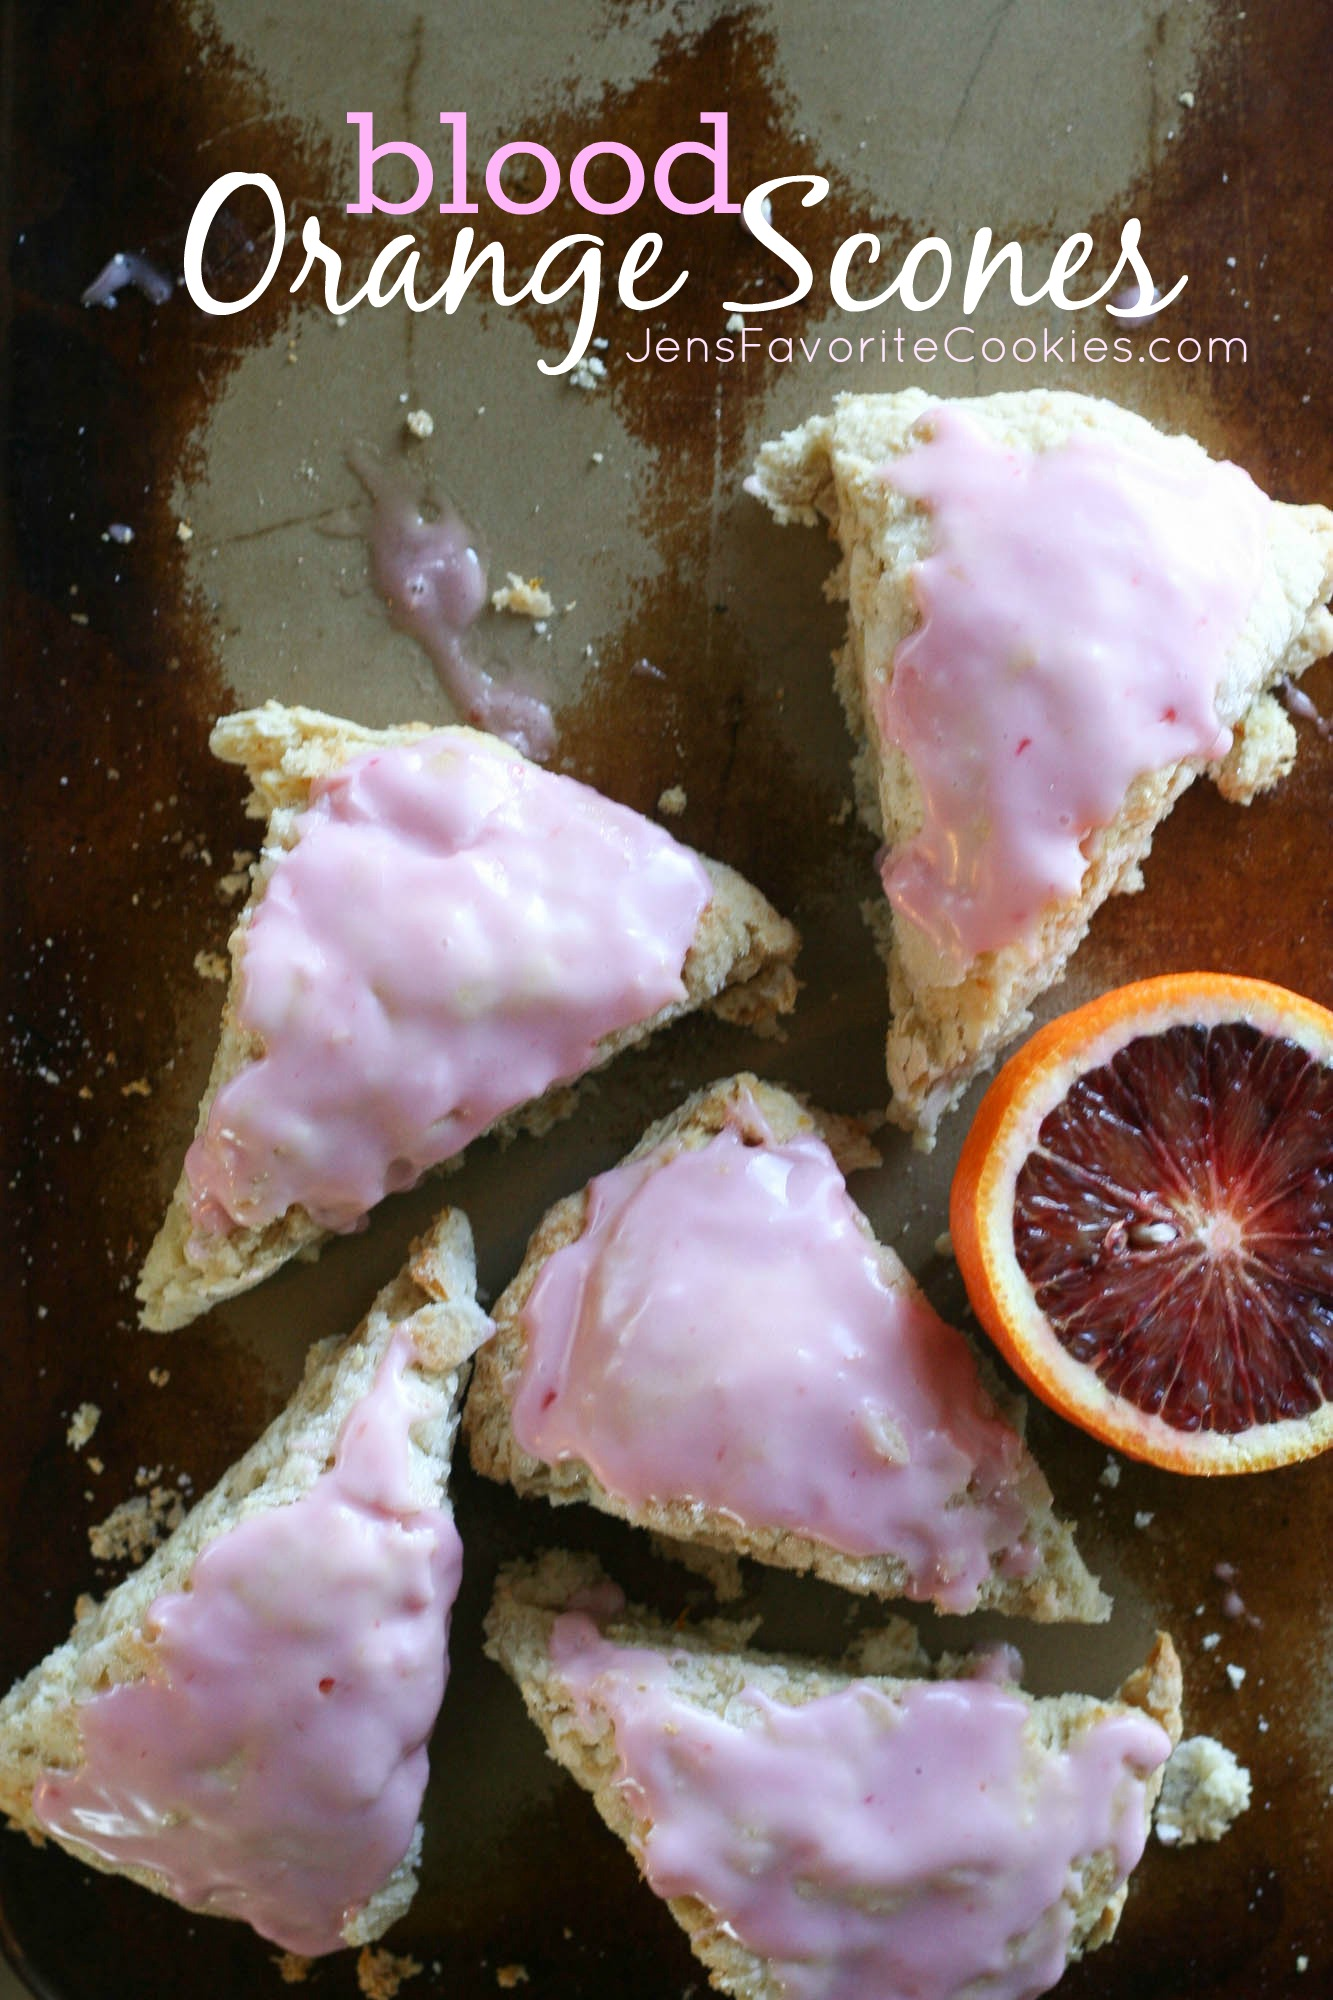 blood-orange-scones-featured-3b